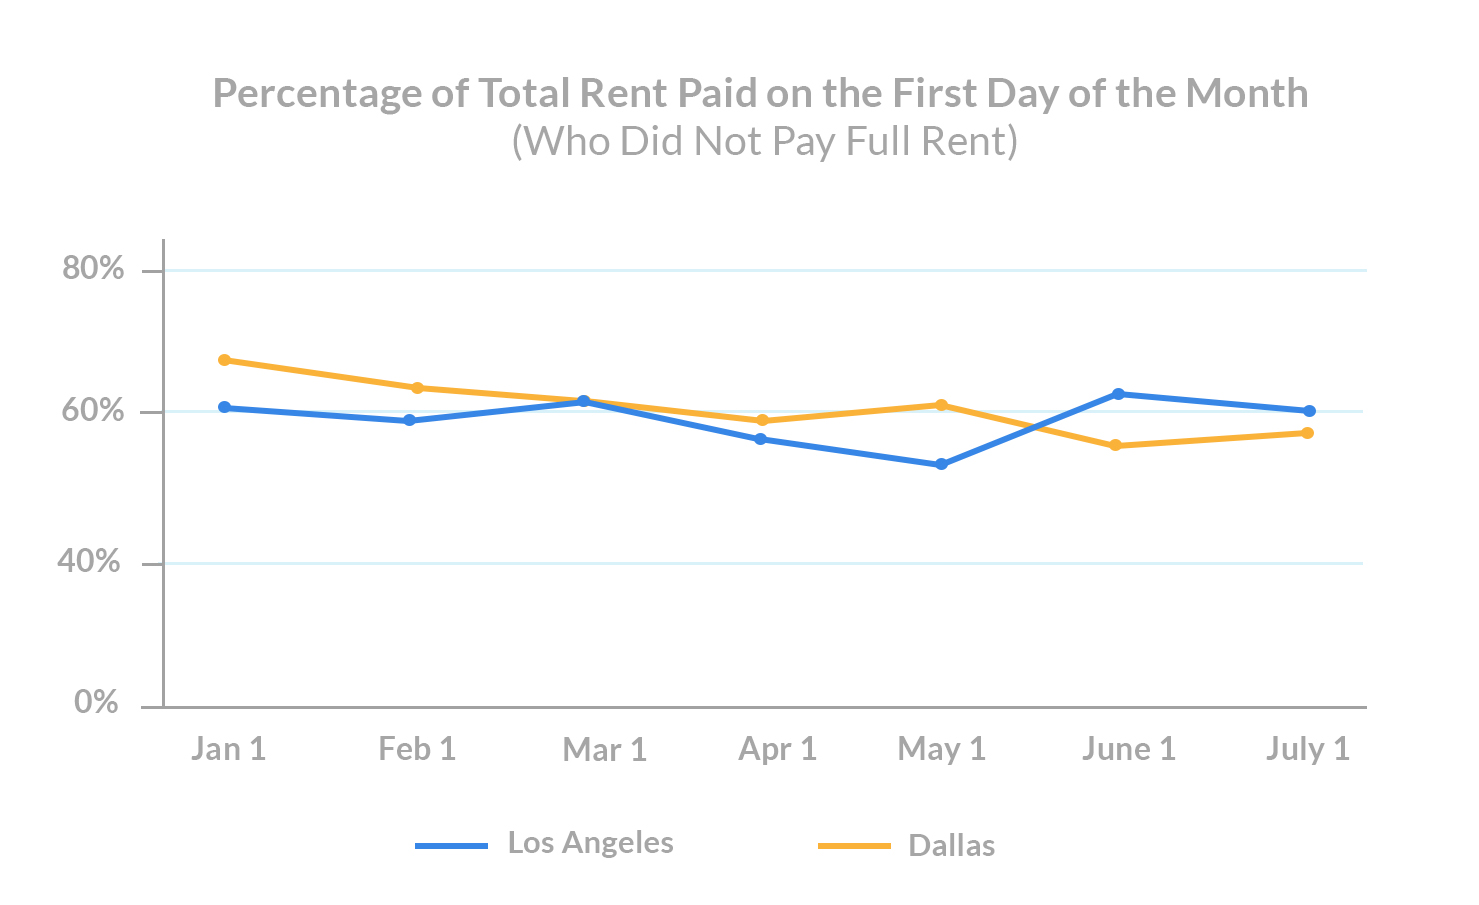 july 1st rent payments Percentage of Total Rent Paid (Who Did Not Pay Full Rent)